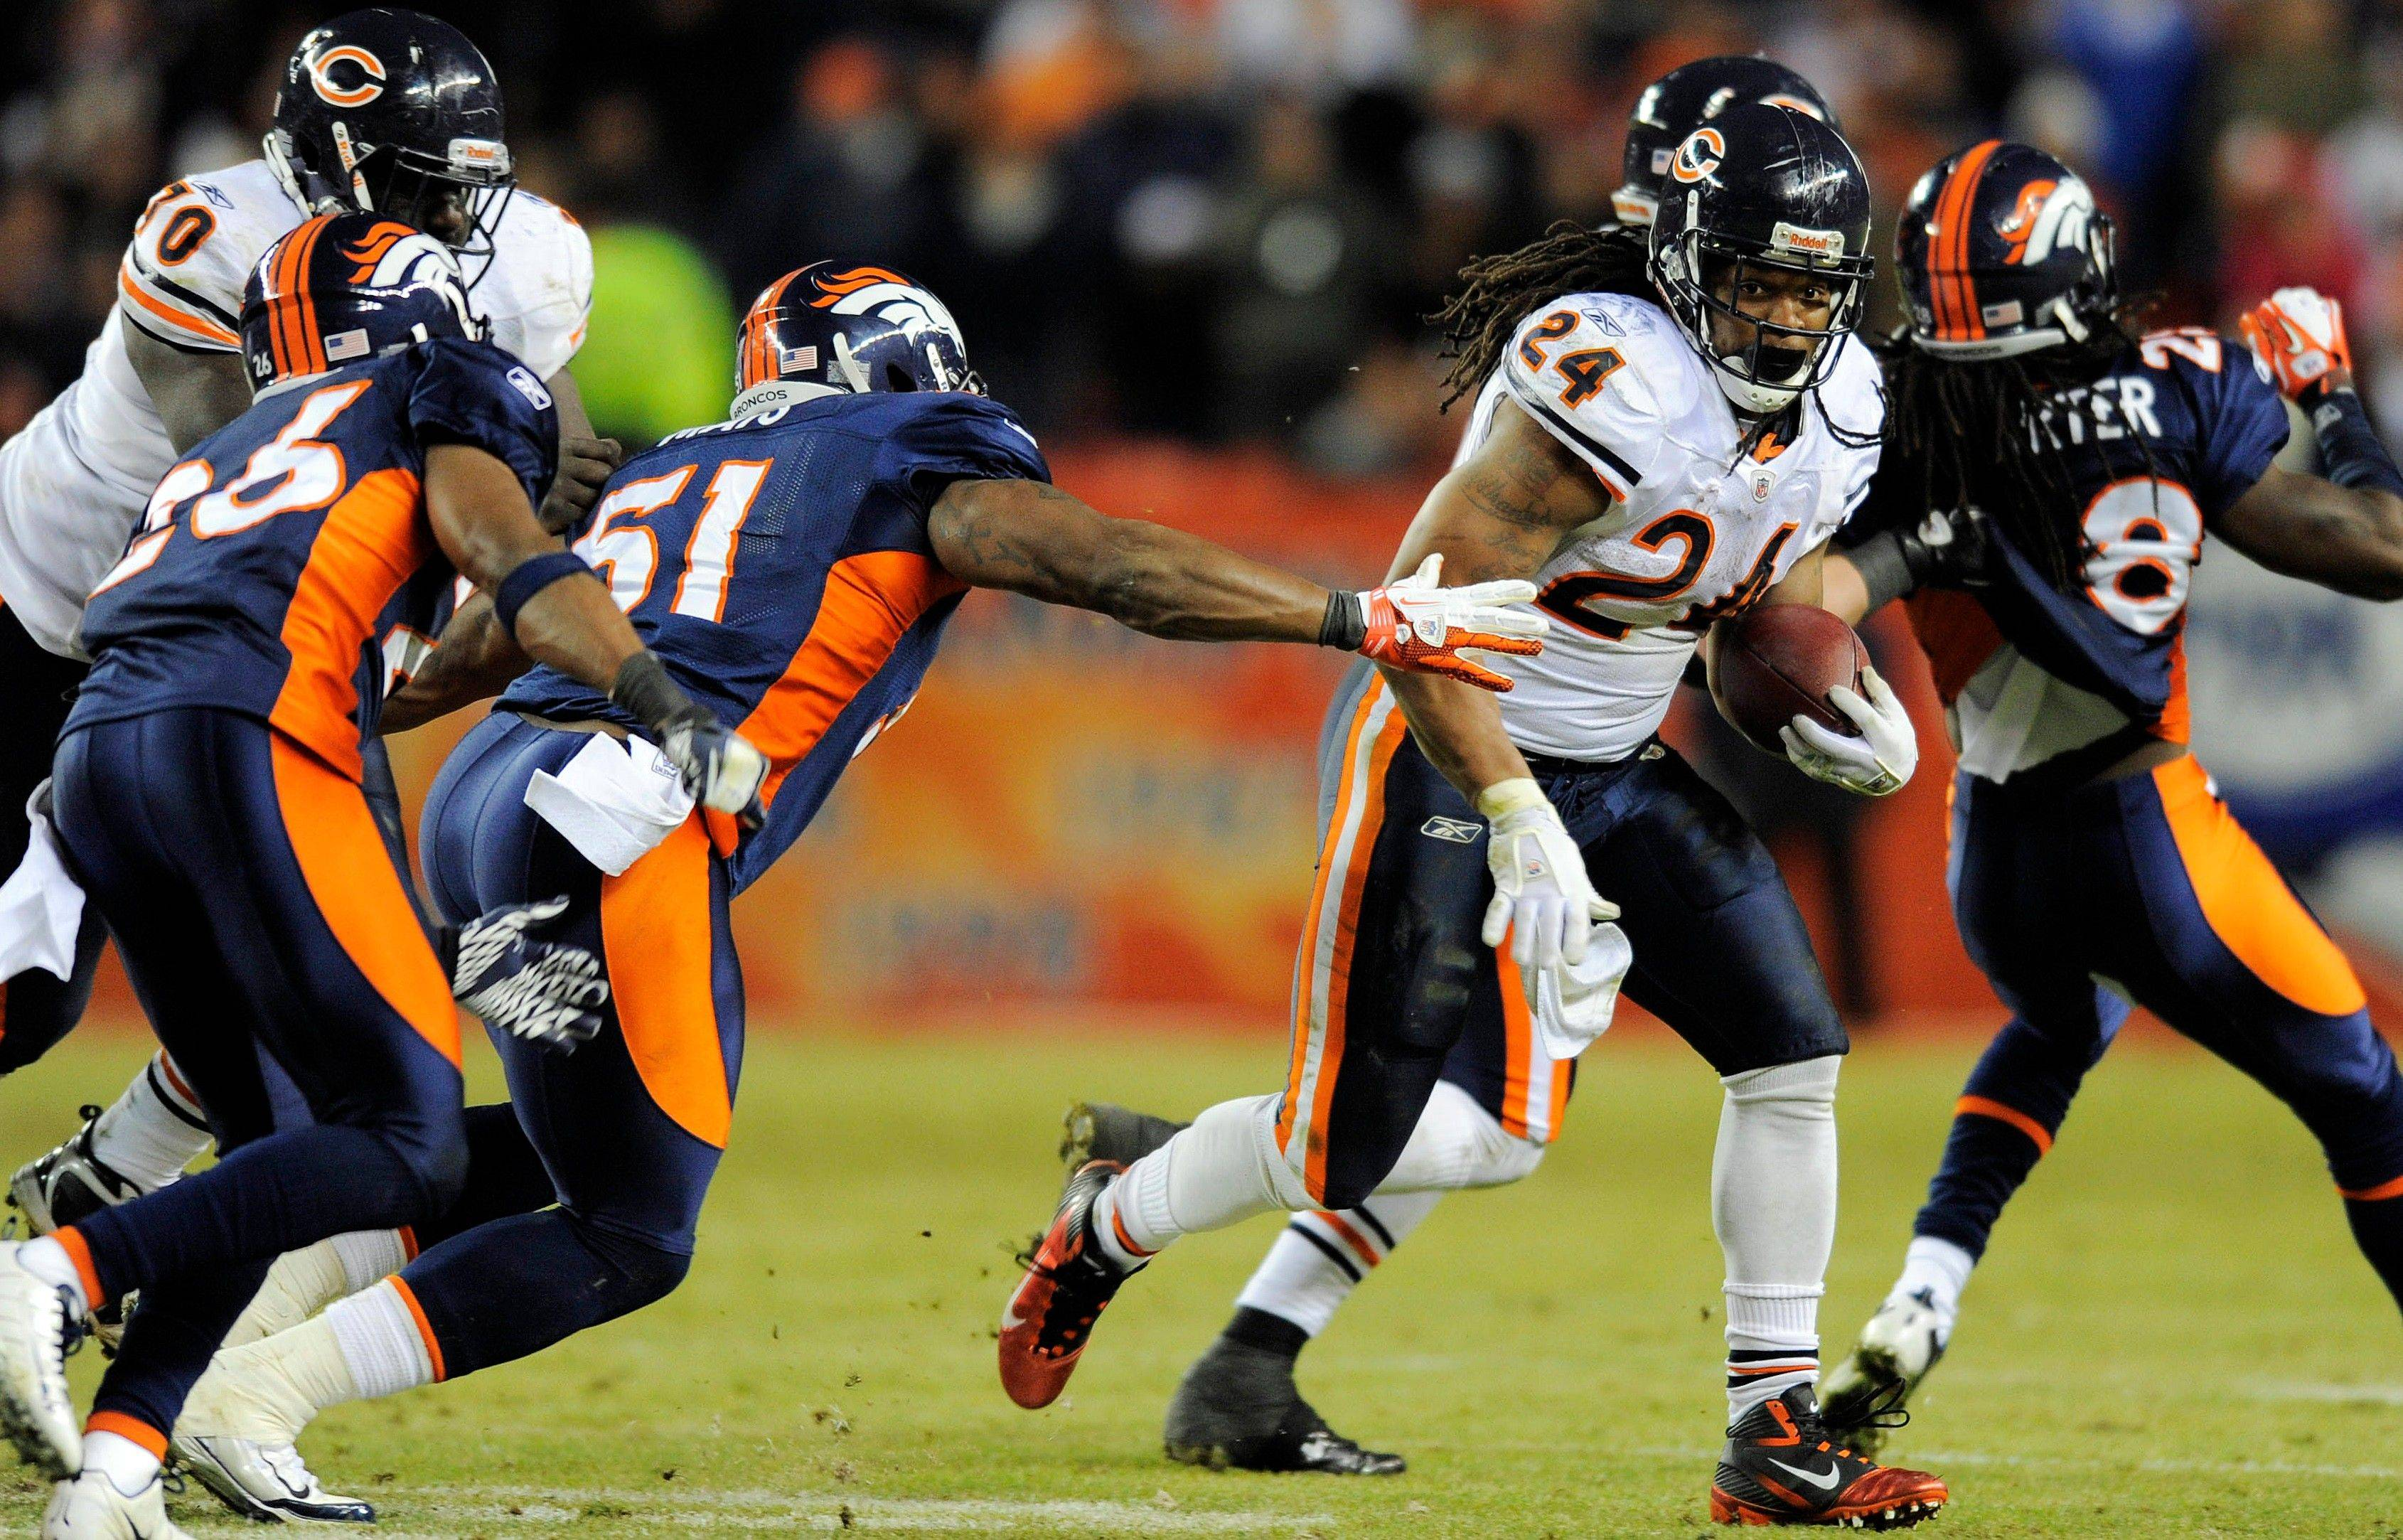 Chicago Bears running back Marion Barber (24) runs the ball against Denver Broncos middle linebacker Joe Mays (51) and free safety Rahim Moore (26) in the fourth quarter.